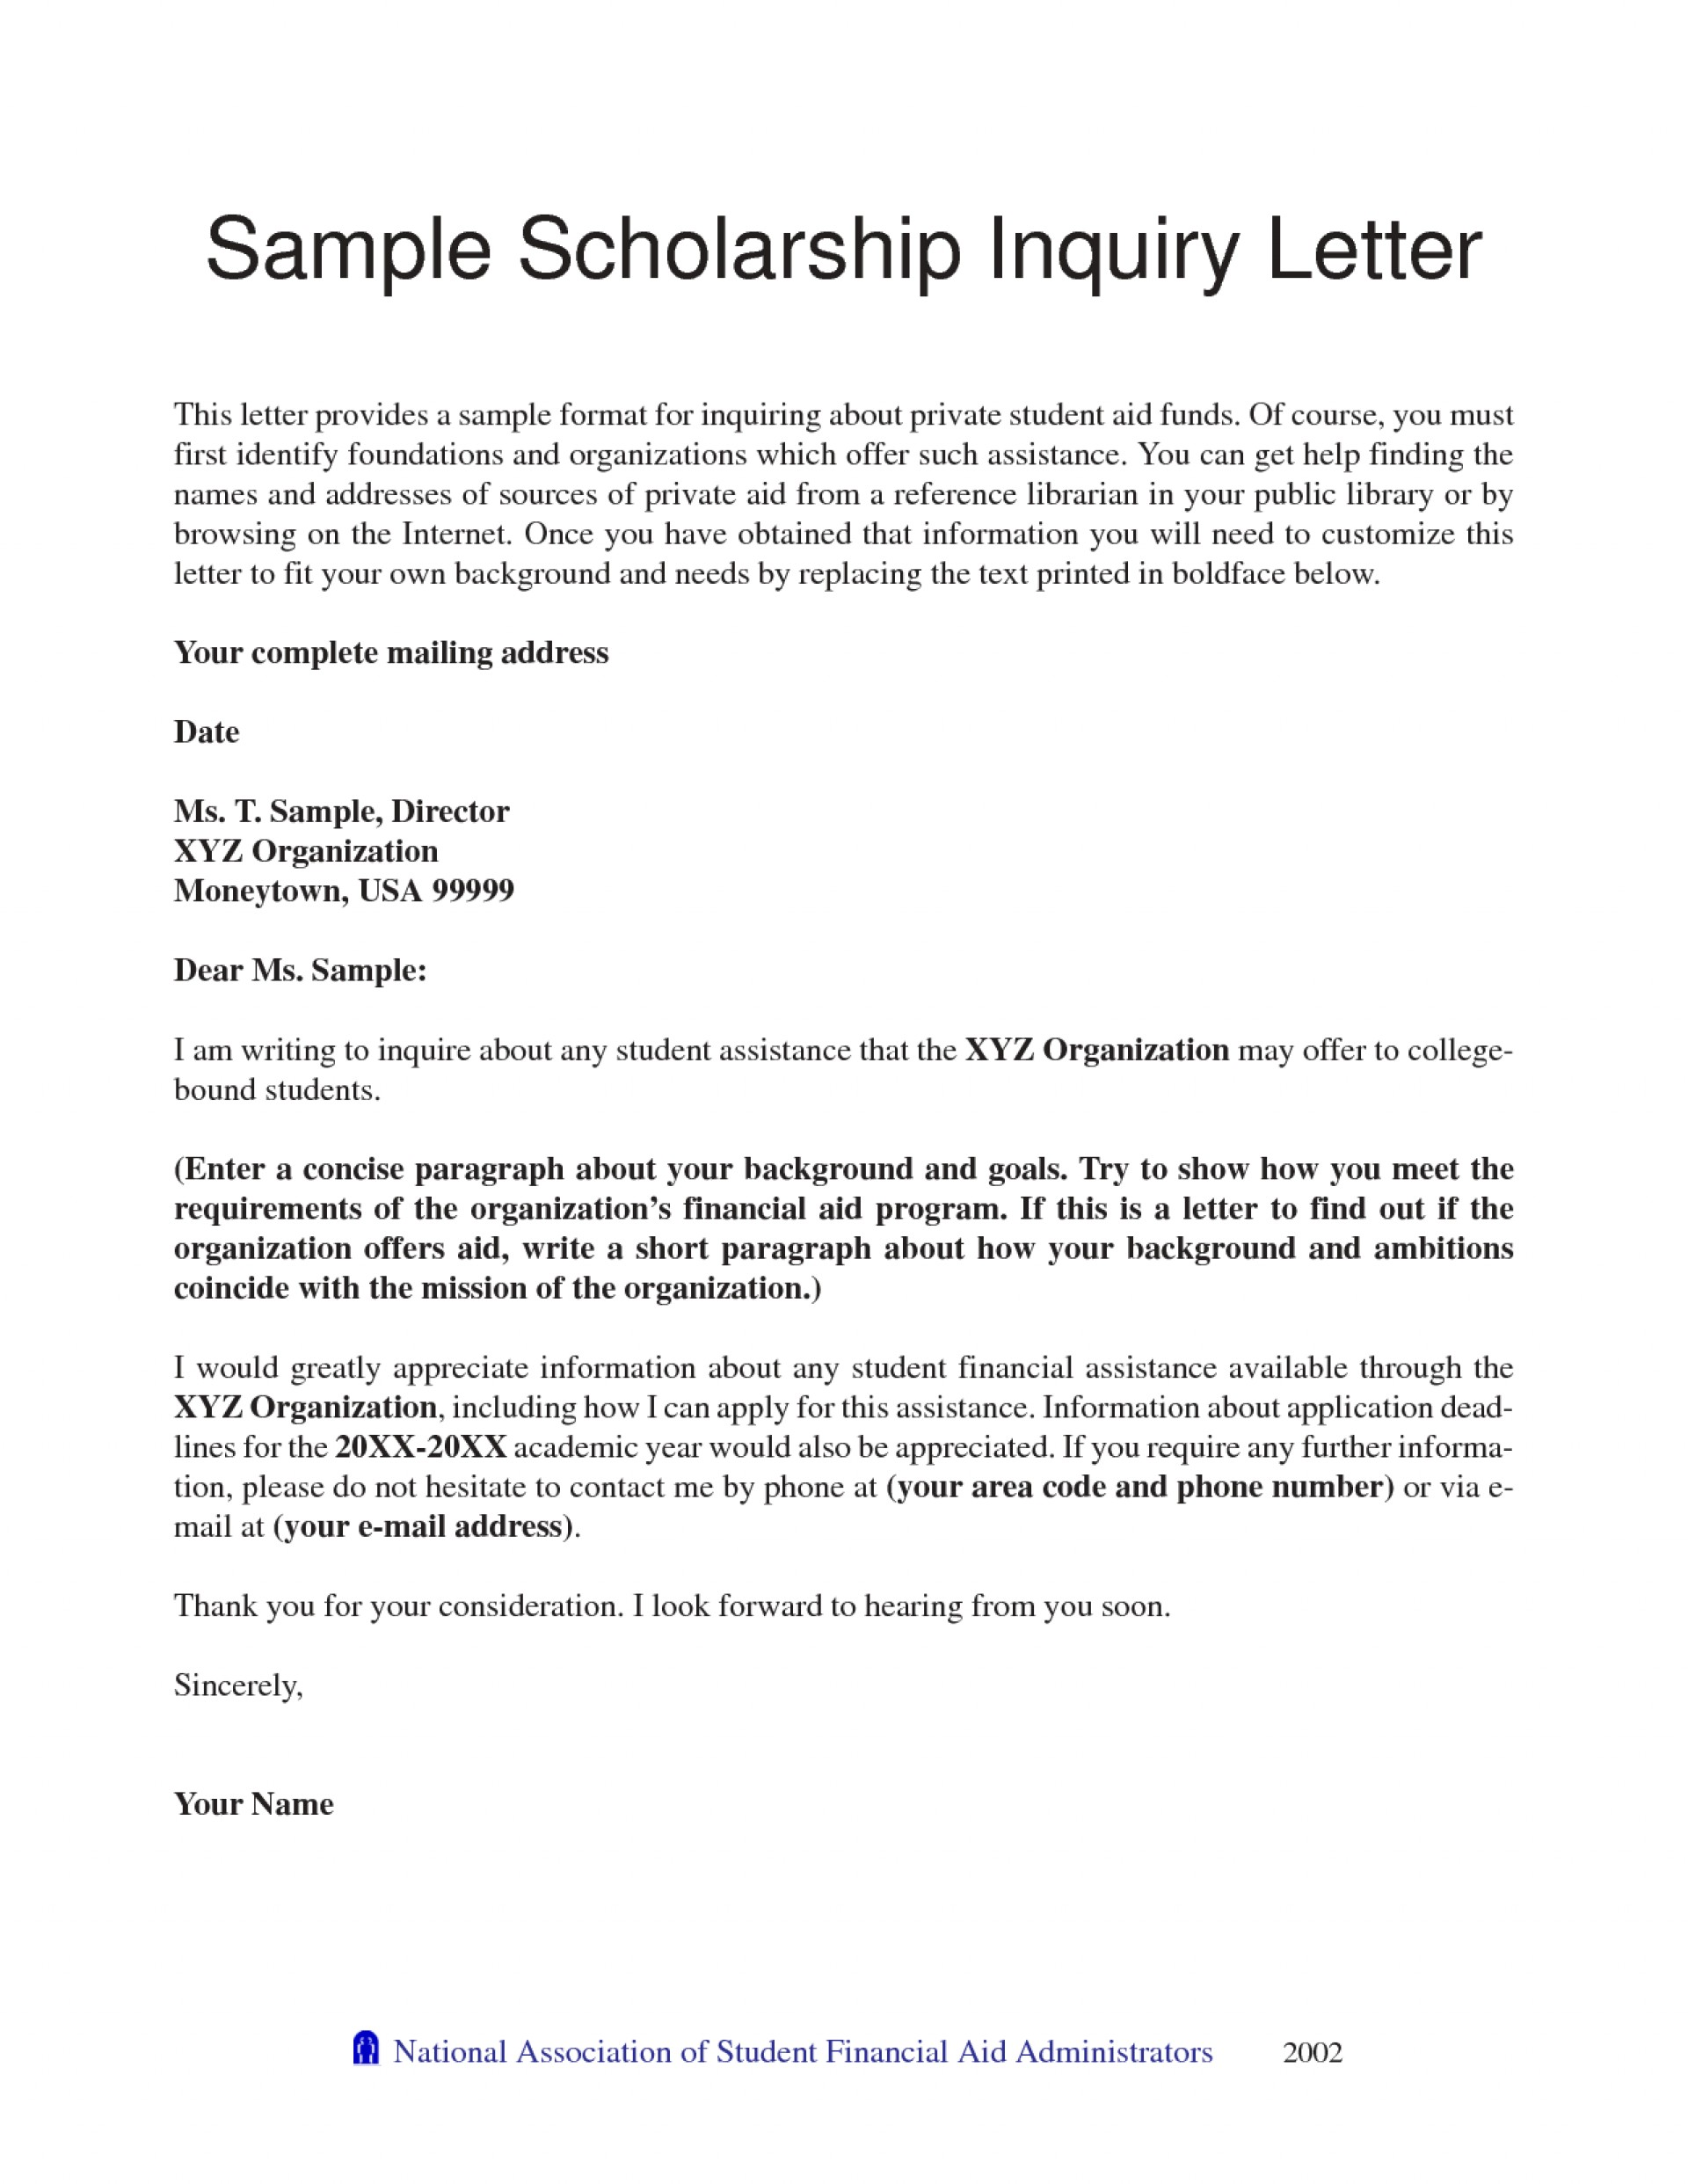 019 Collection Of Solutions College Scholarship Recommendation Letter Sample For Format Layout Scholarships Without Essays Essay Stunning Requirements No Required In Texas 1920